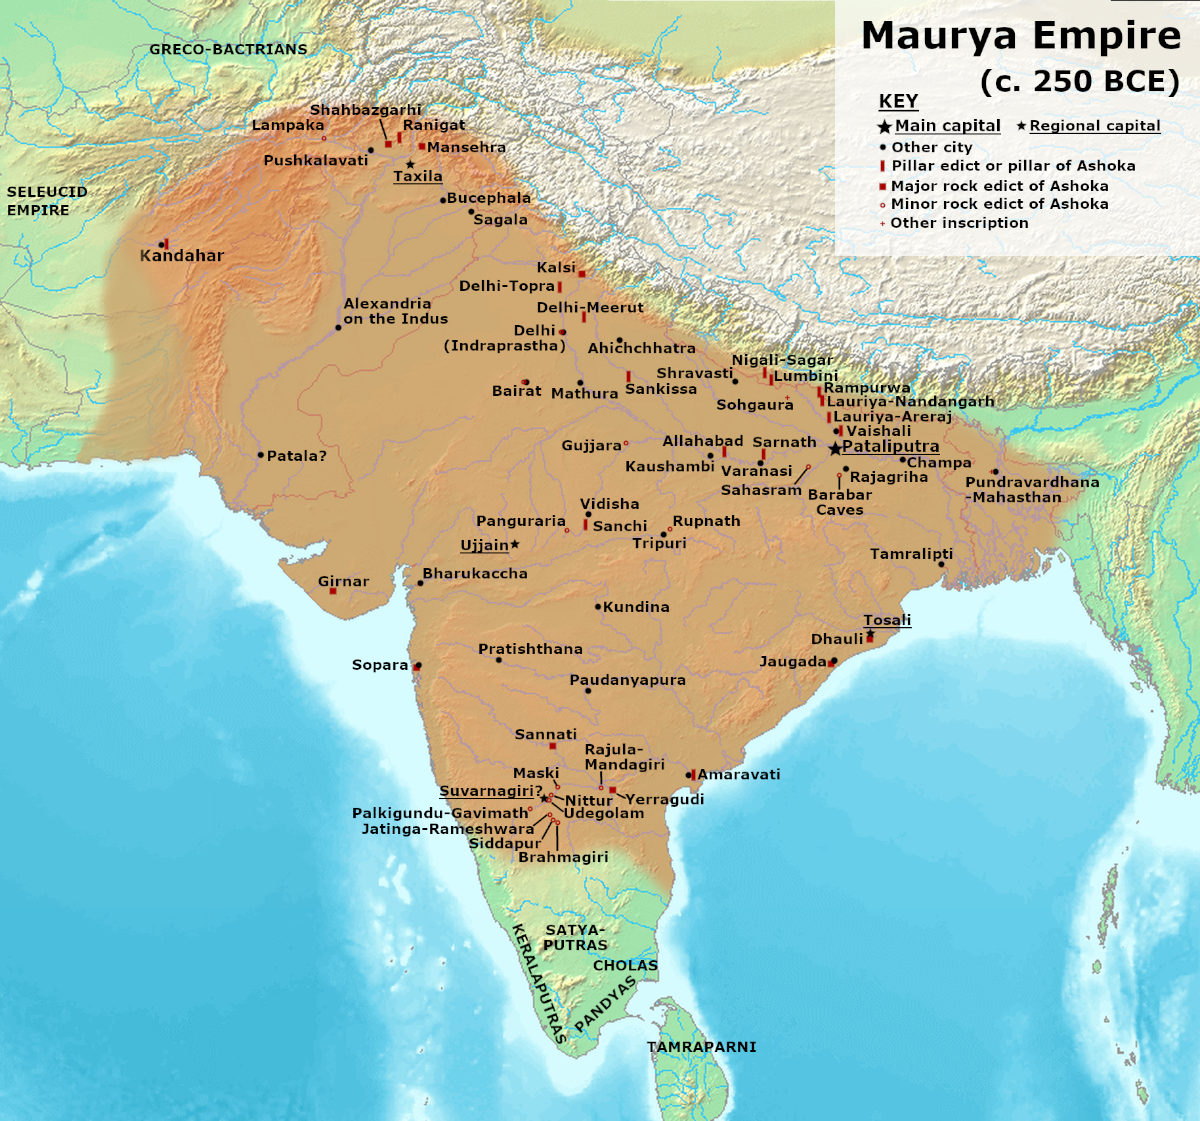 mauryan empire han china When comparing the han dynasty(china) with the mauryan empire(india), you can see similarities very clearly, but under those, distinct differences can be found politics in each culture resemble each other in many ways the two empires have a sort of checks and balance system.